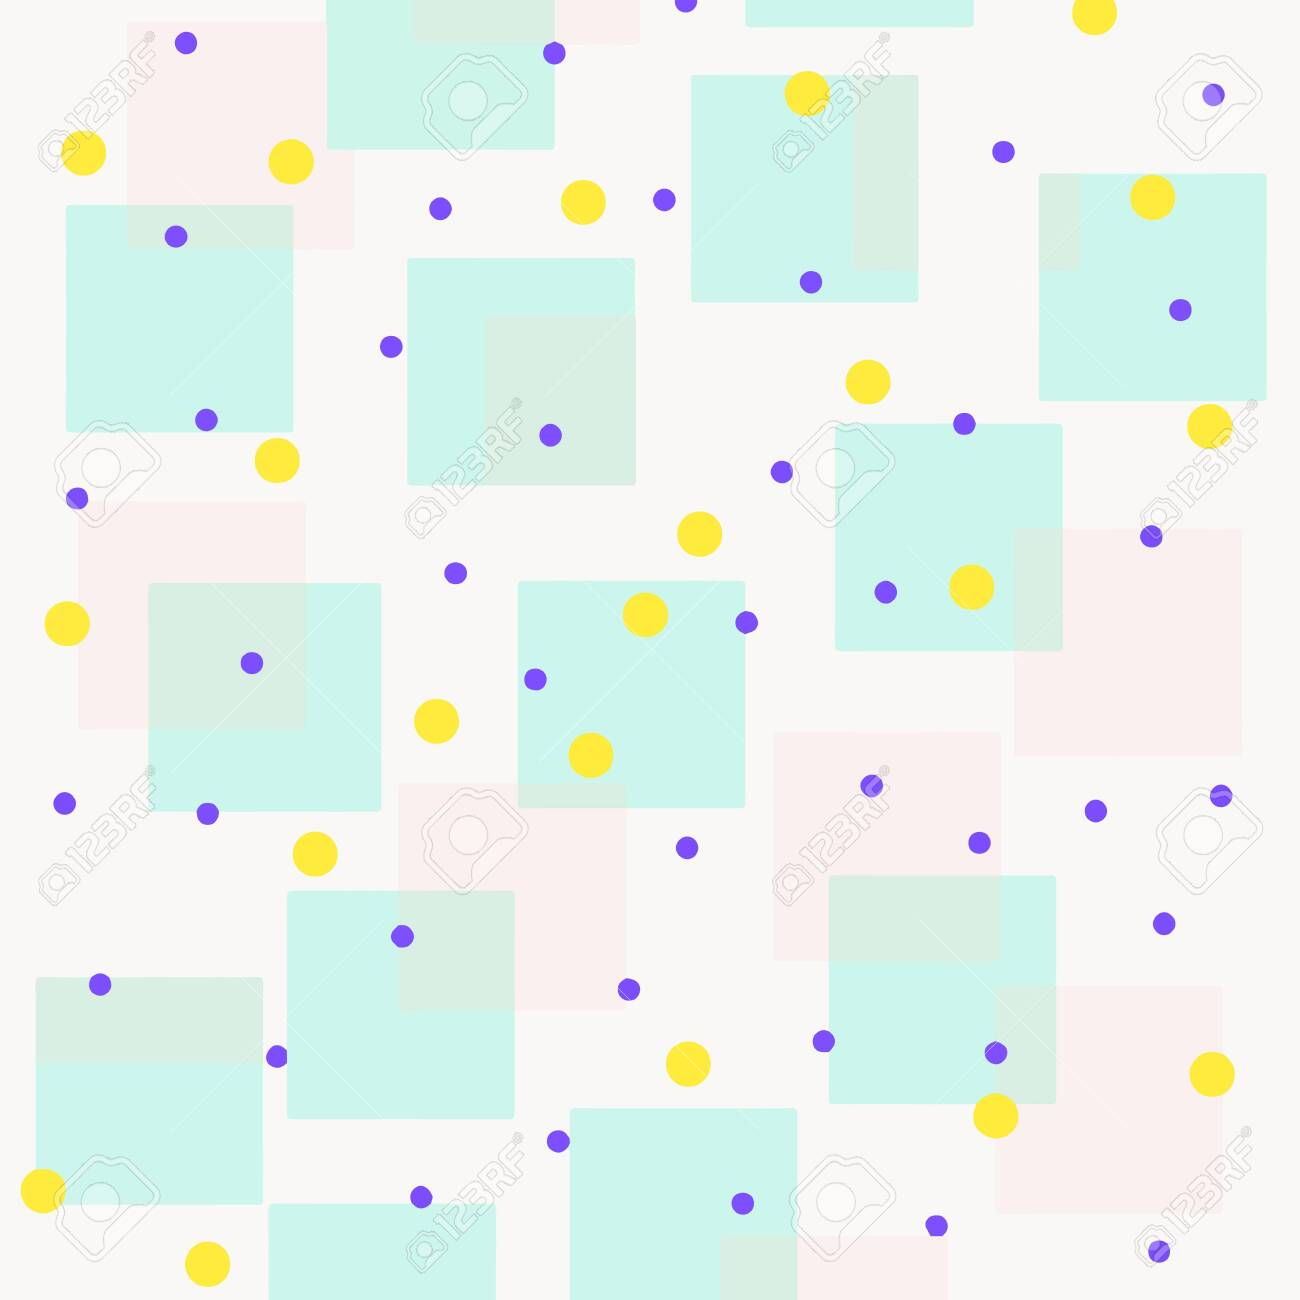 Abstract Simple Pattern With Spots Cubes And Dots Pastel Shades Stock Photo Picture And Royalty Free Image Image 143610667,Wooden Fence Driveway Gate Designs